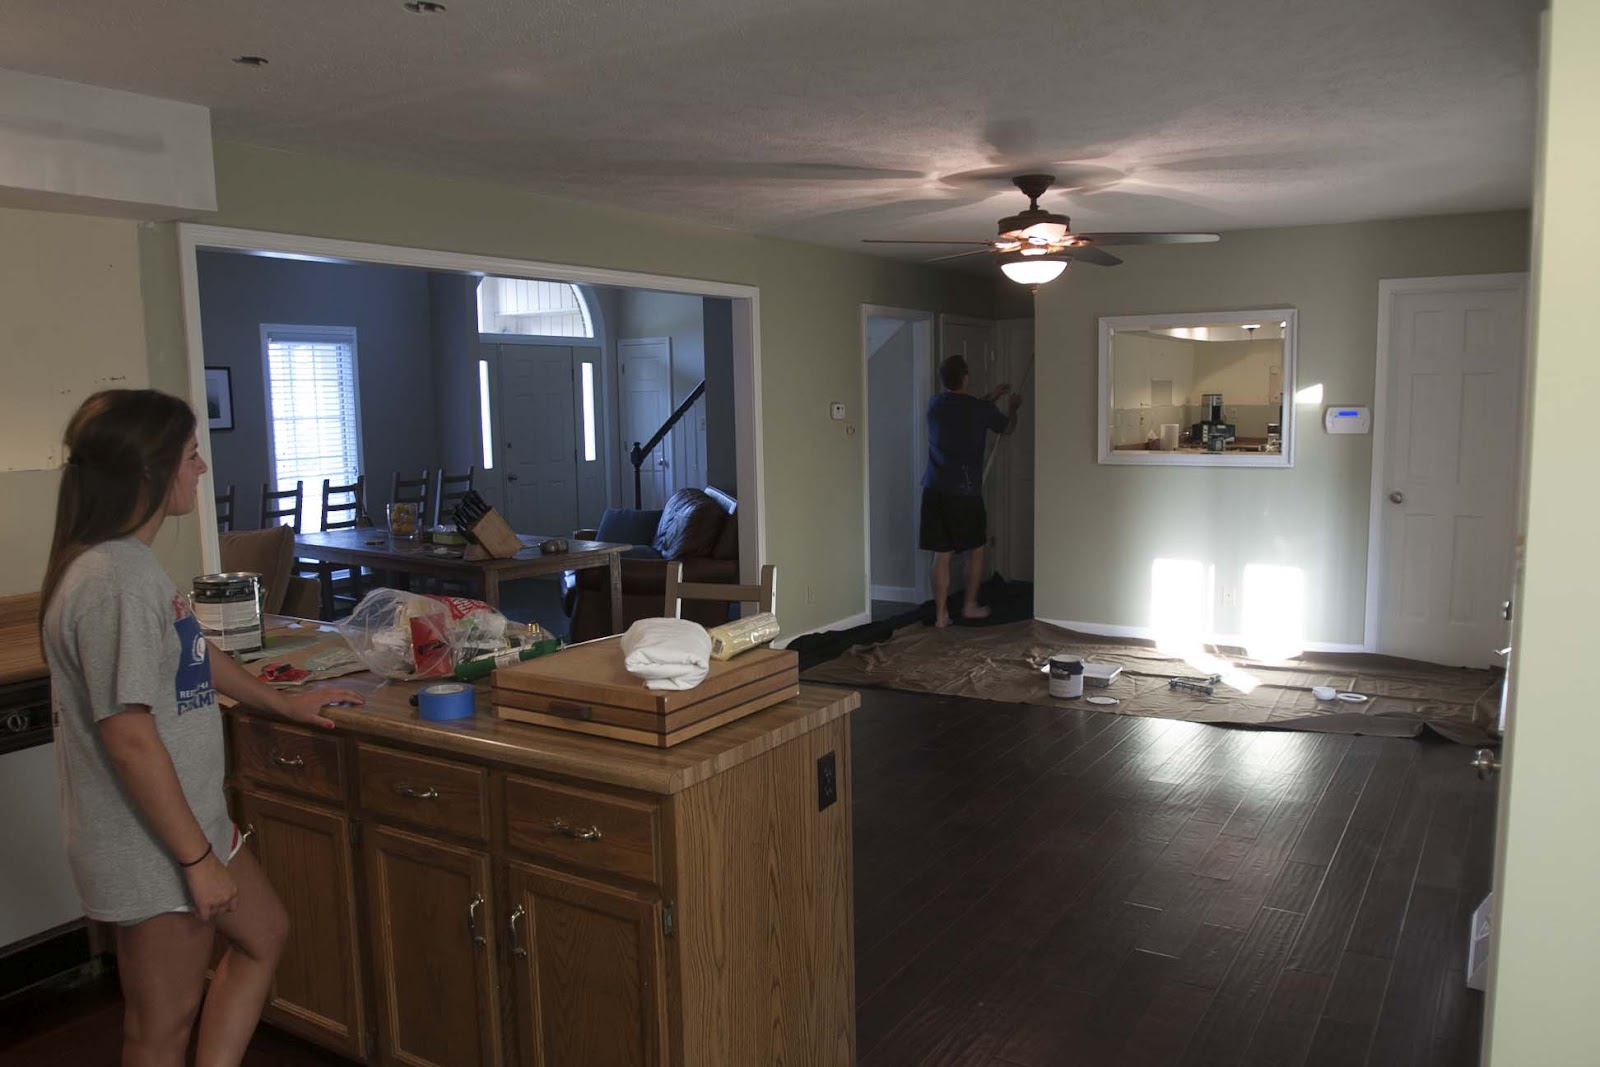 How To Paint Kitchen Cabinets Without Streaks The English 39s Our Kitchen My Favorite Room In The House